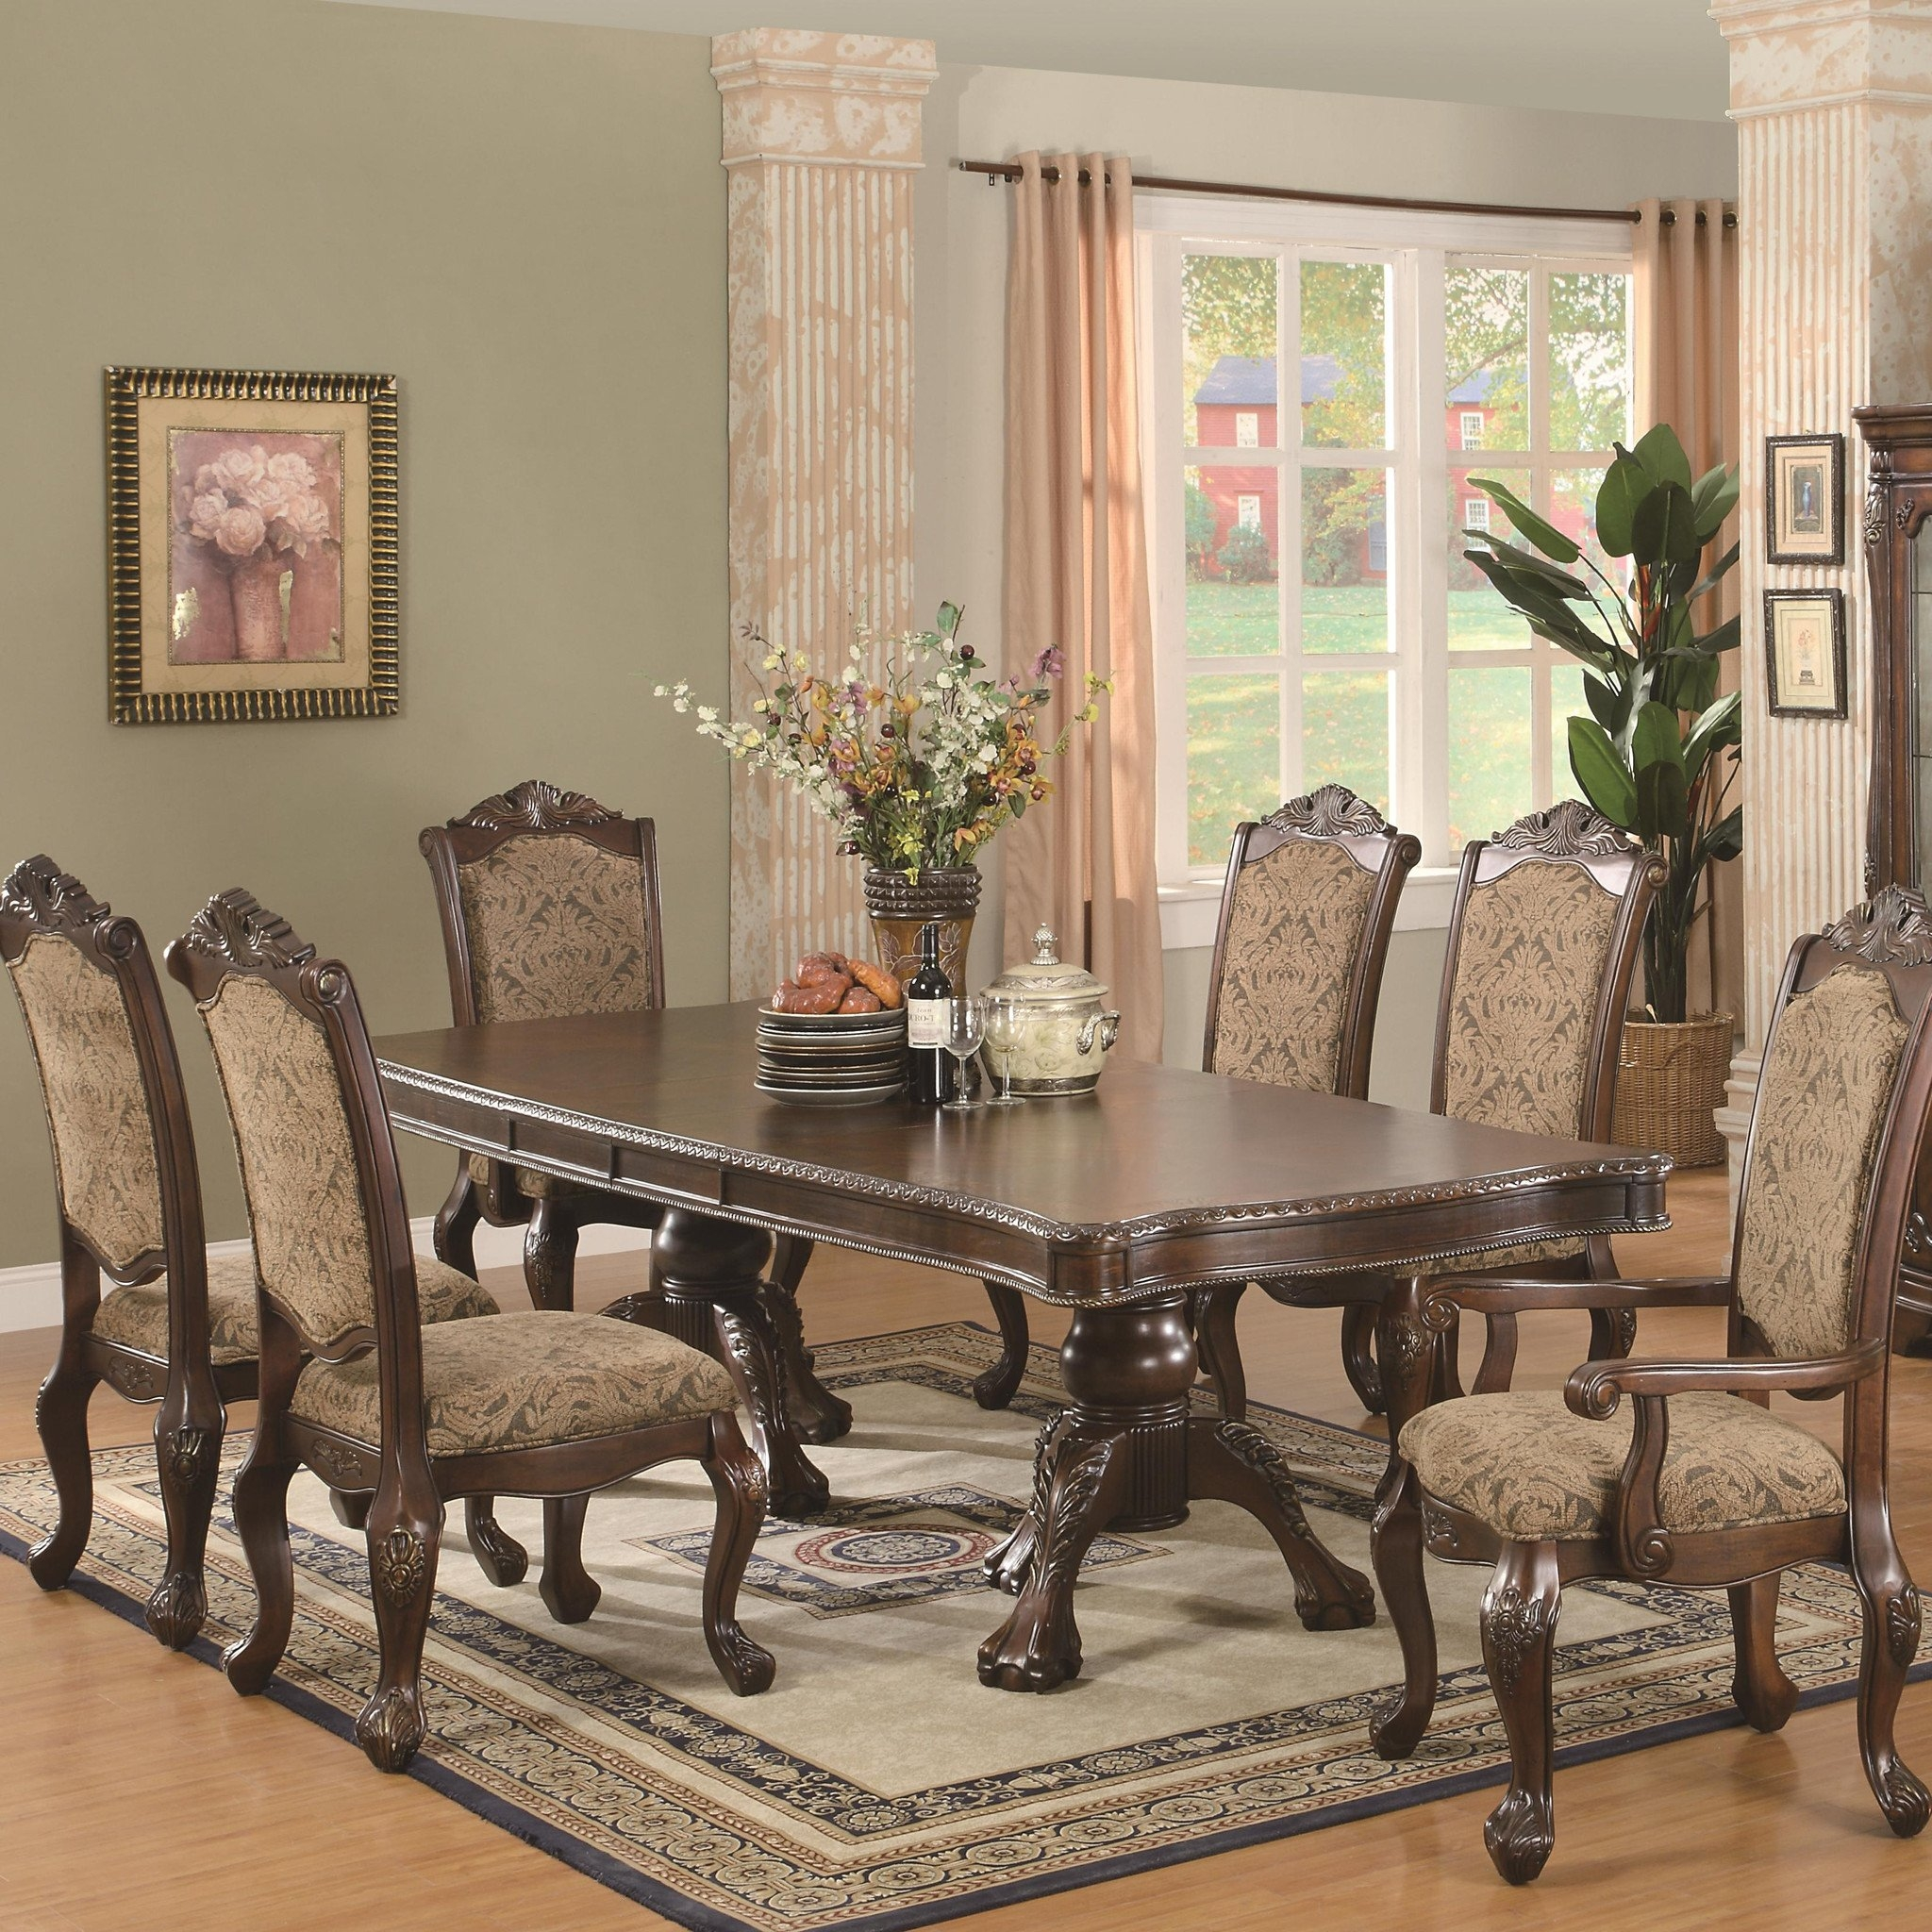 andrea arm chair chairs dinning room in 2019 traditional